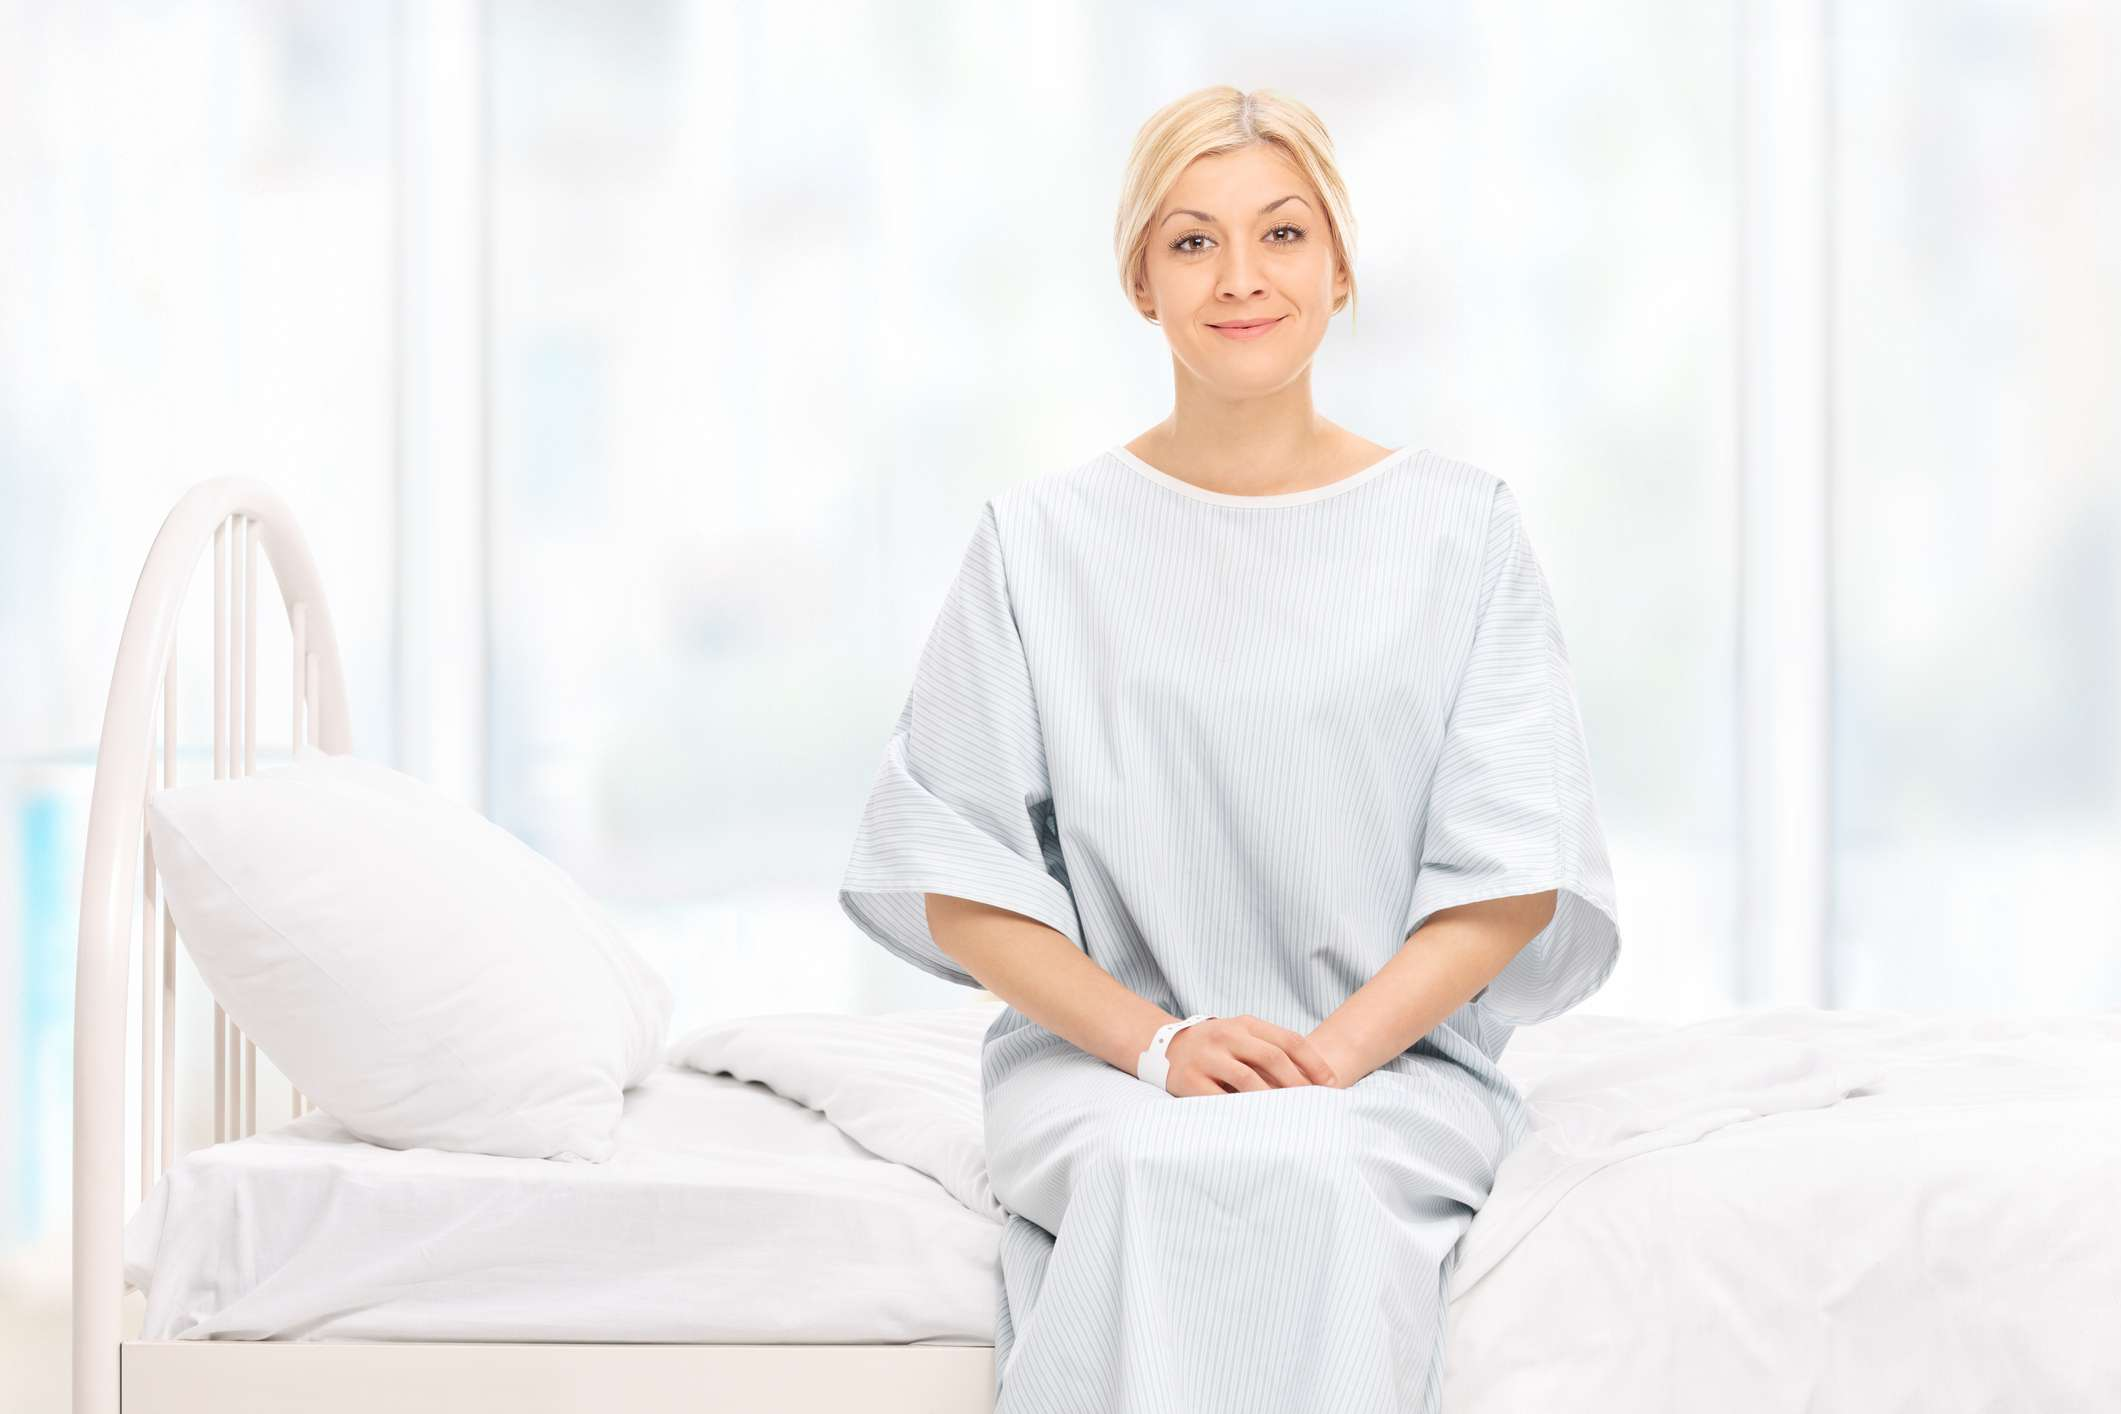 Patient sitting on a hospital bed